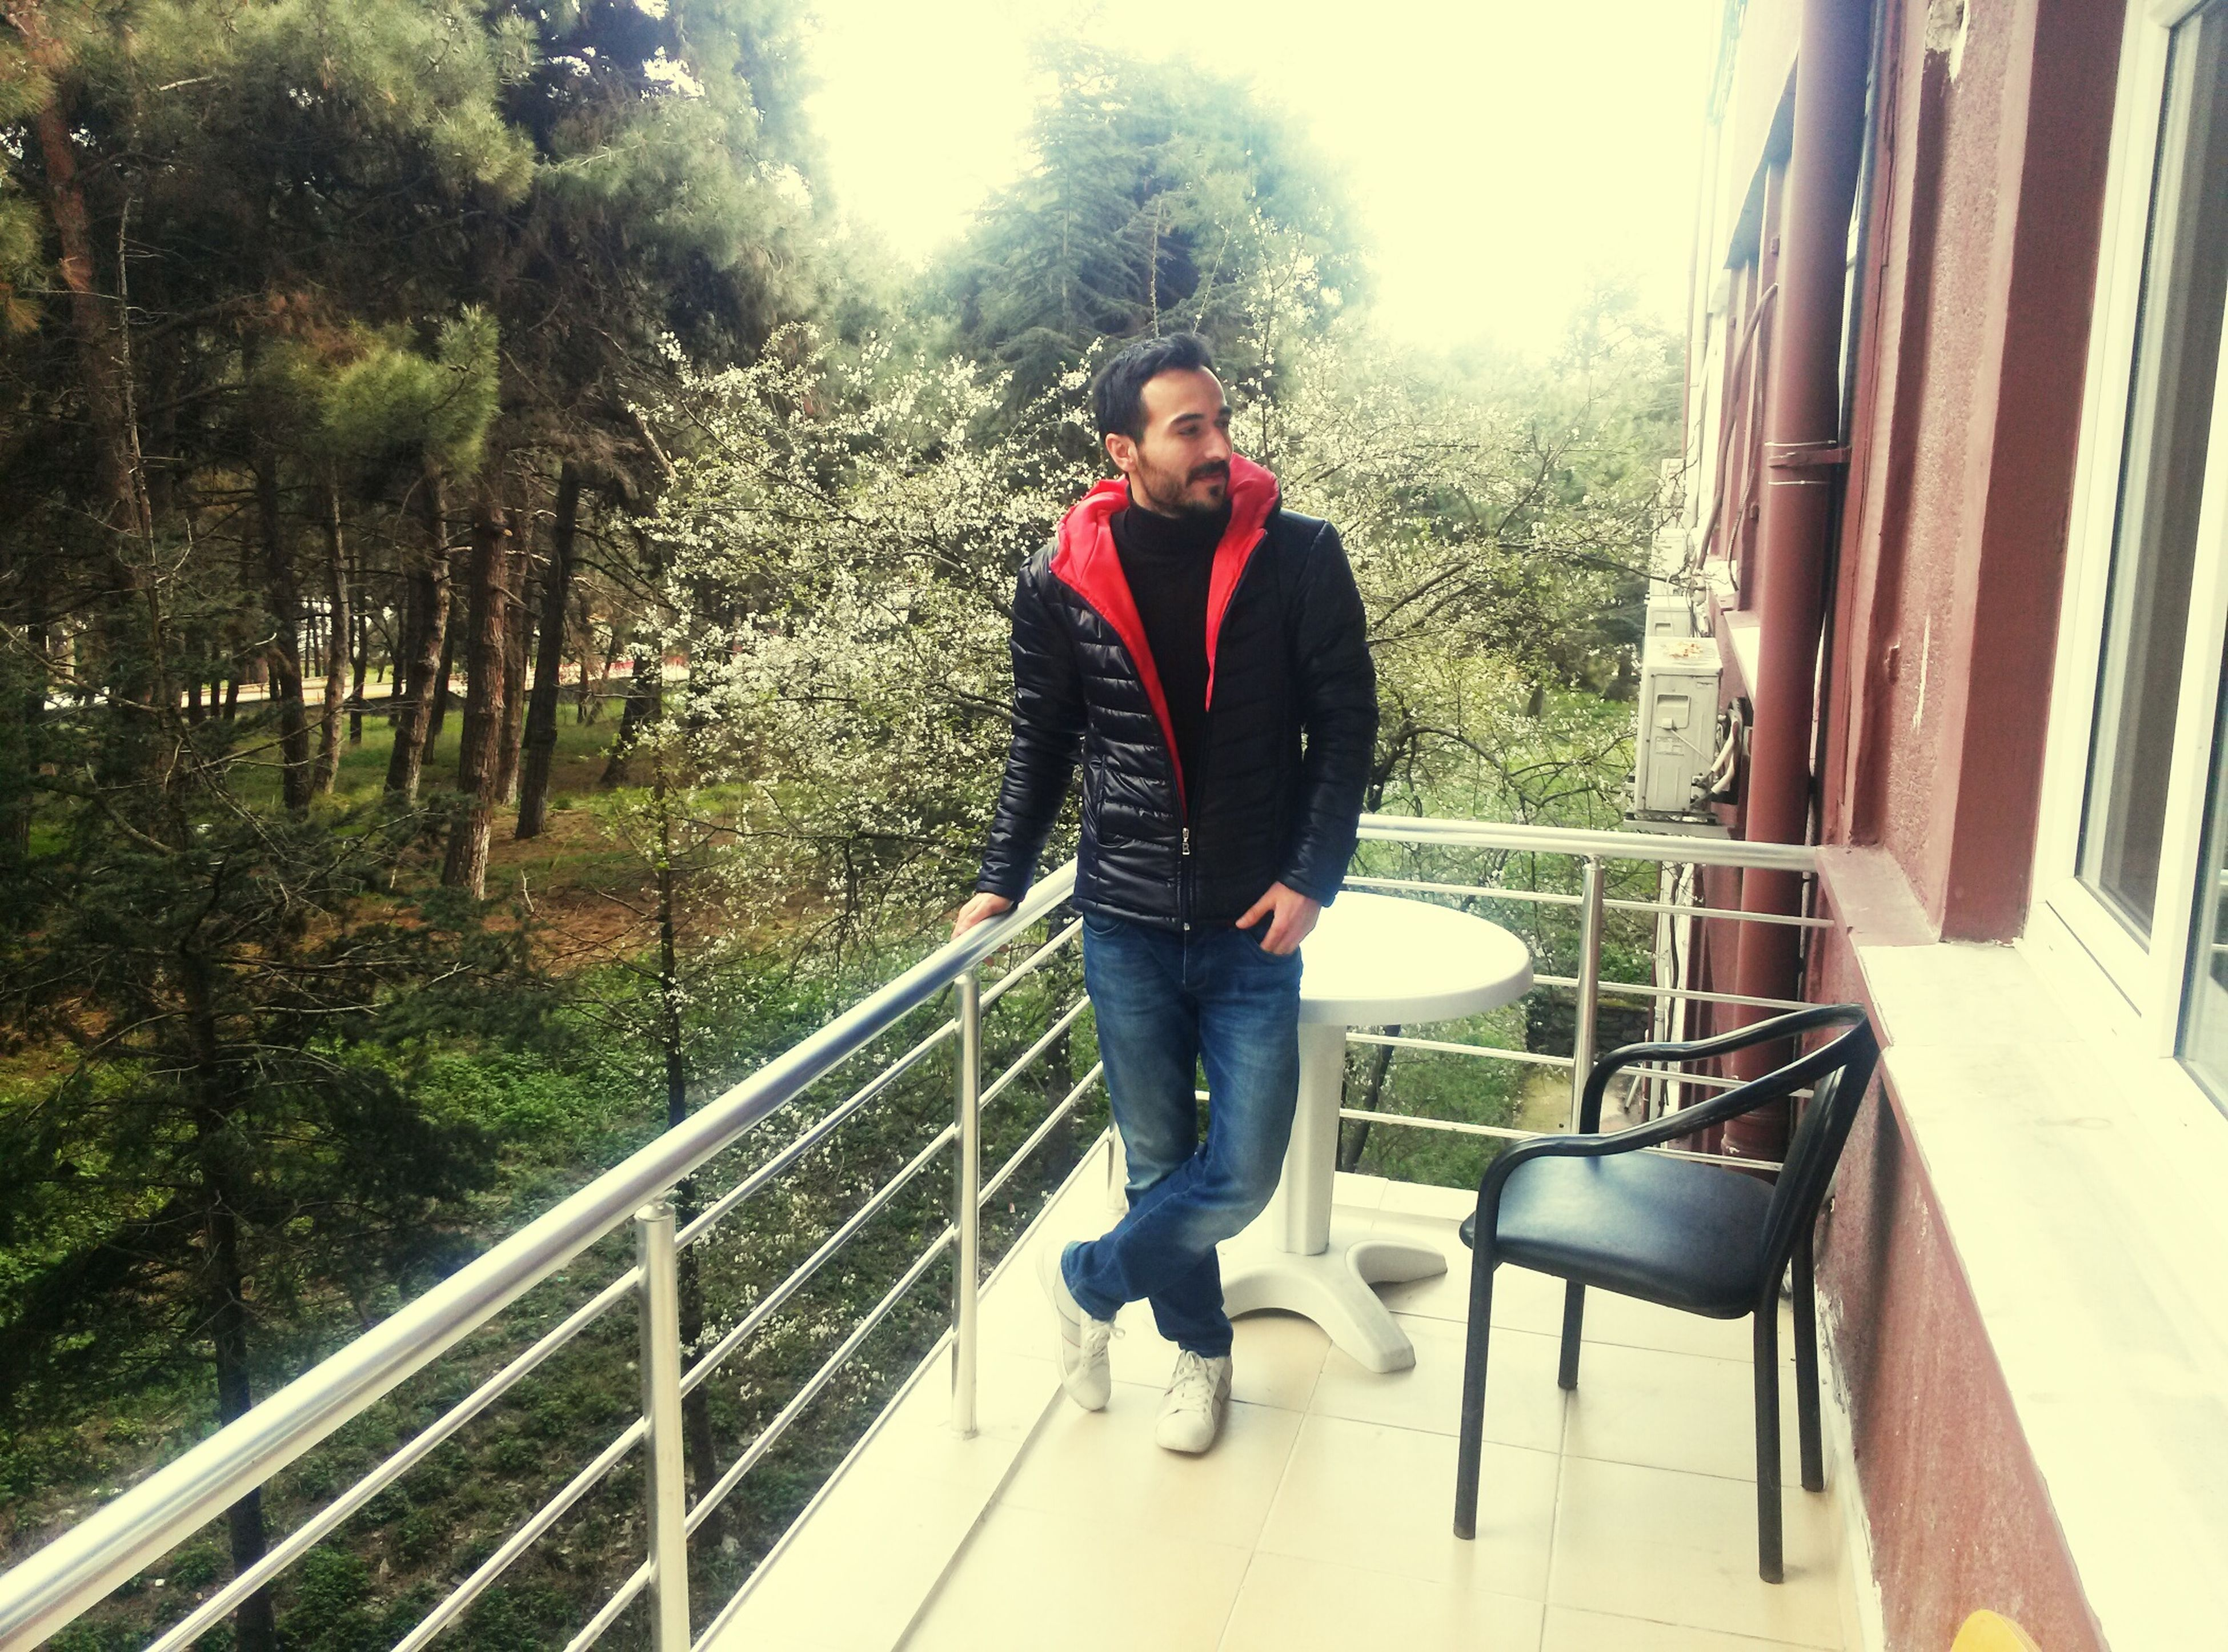 full length, casual clothing, lifestyles, person, railing, tree, leisure activity, built structure, architecture, young adult, standing, building exterior, young men, front view, sitting, steps, looking at camera, day